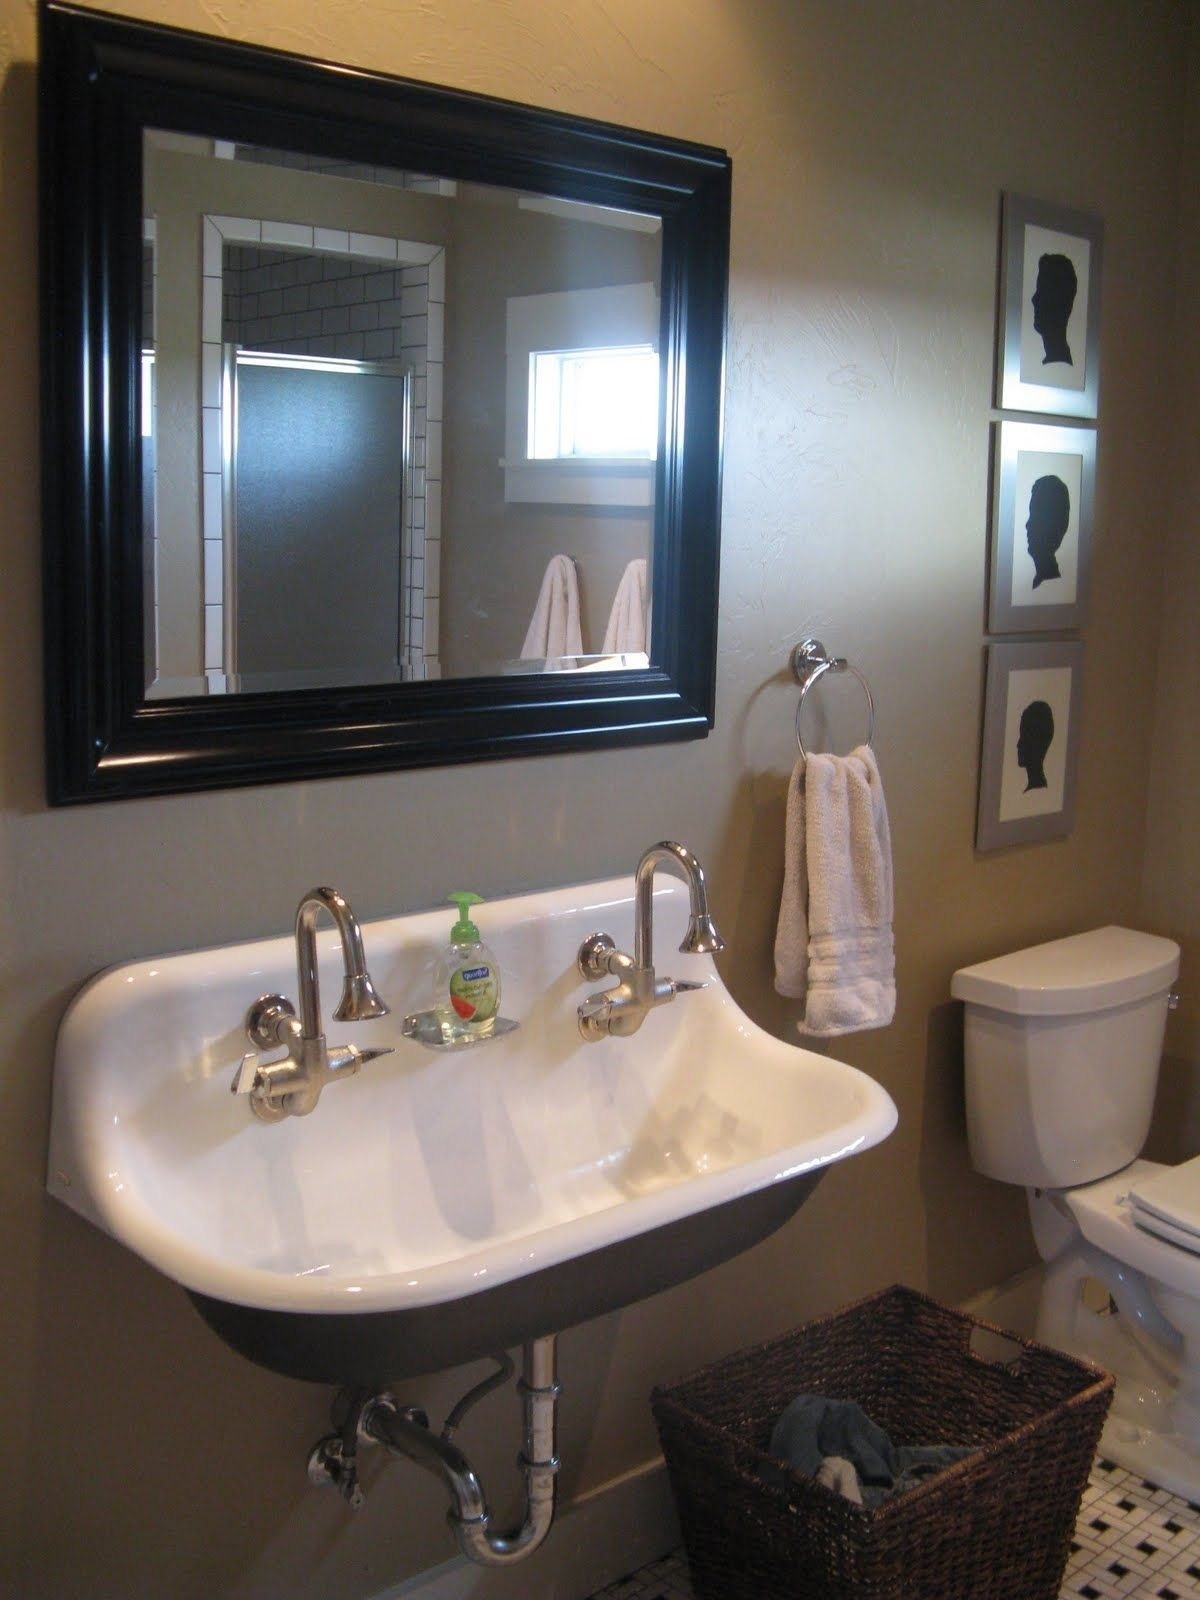 Ideas, remodeling a trough bathroom sink with two faucets free designs intended for measurements 1200 x 1600  .